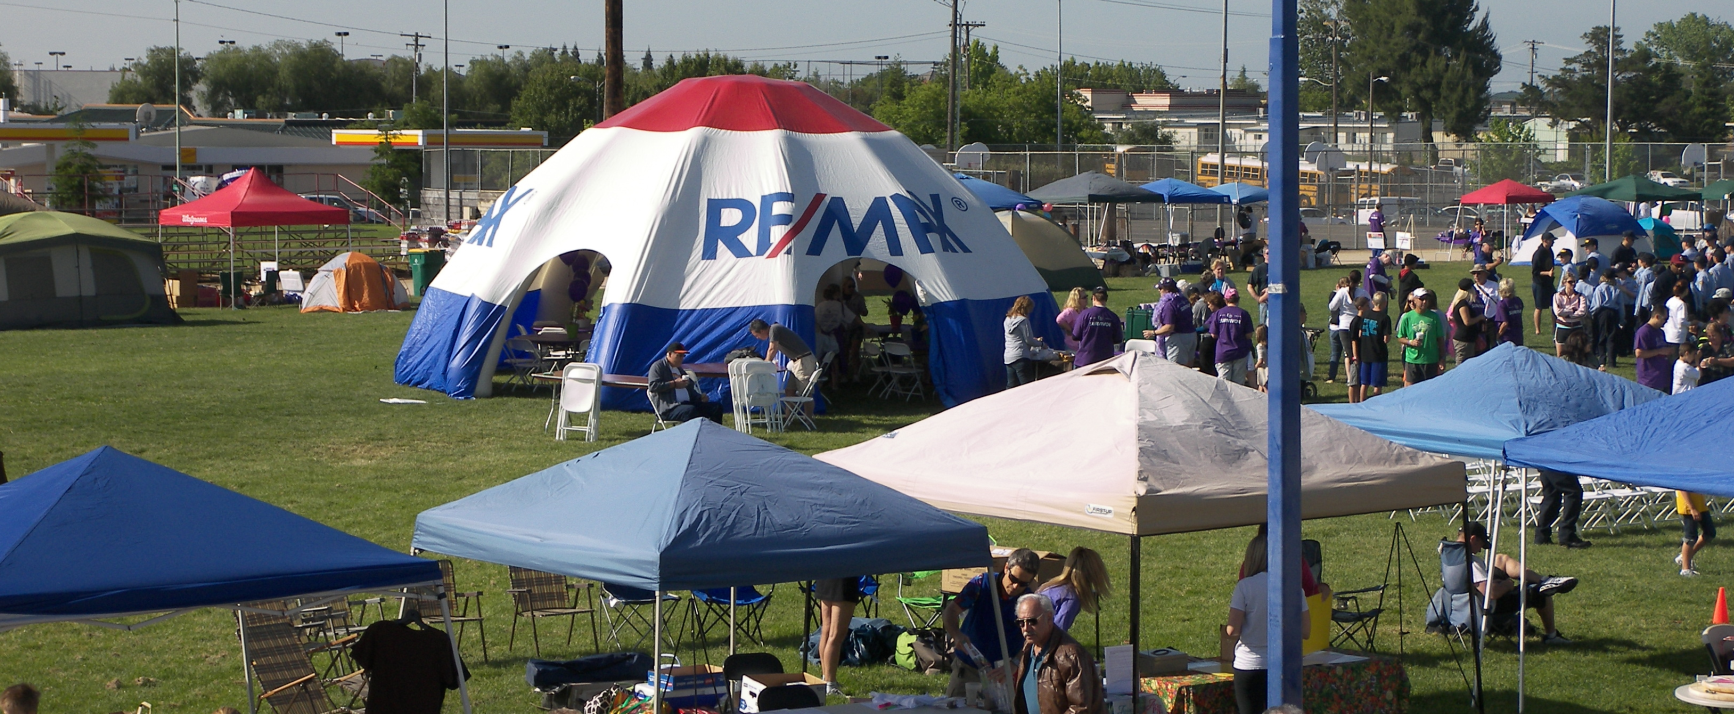 RE/MAX Tent at Relay For Life